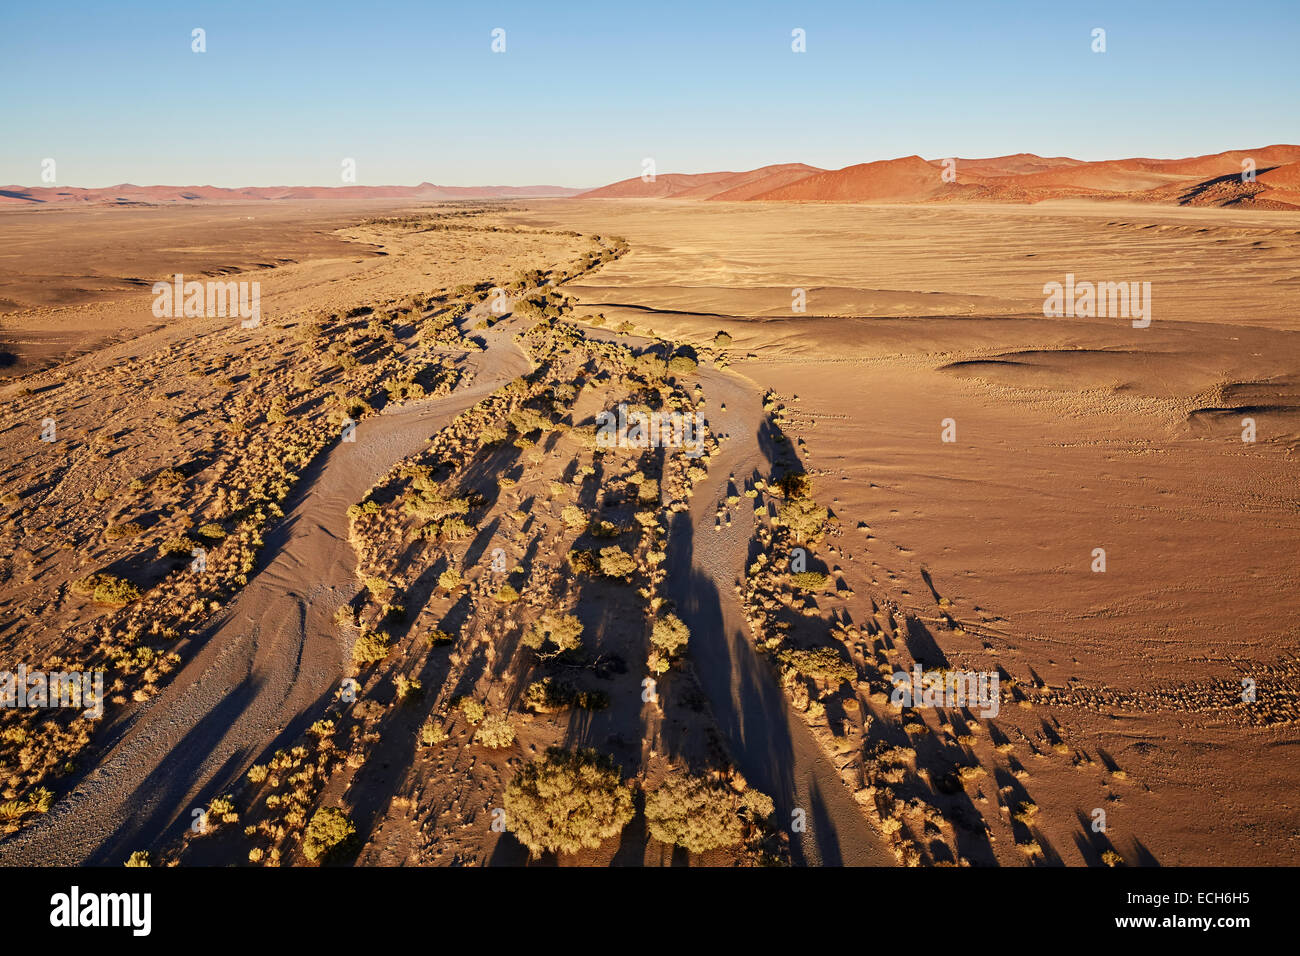 Namib, vue aérienne, Namib-Naukluft National Park, Namibie Photo Stock